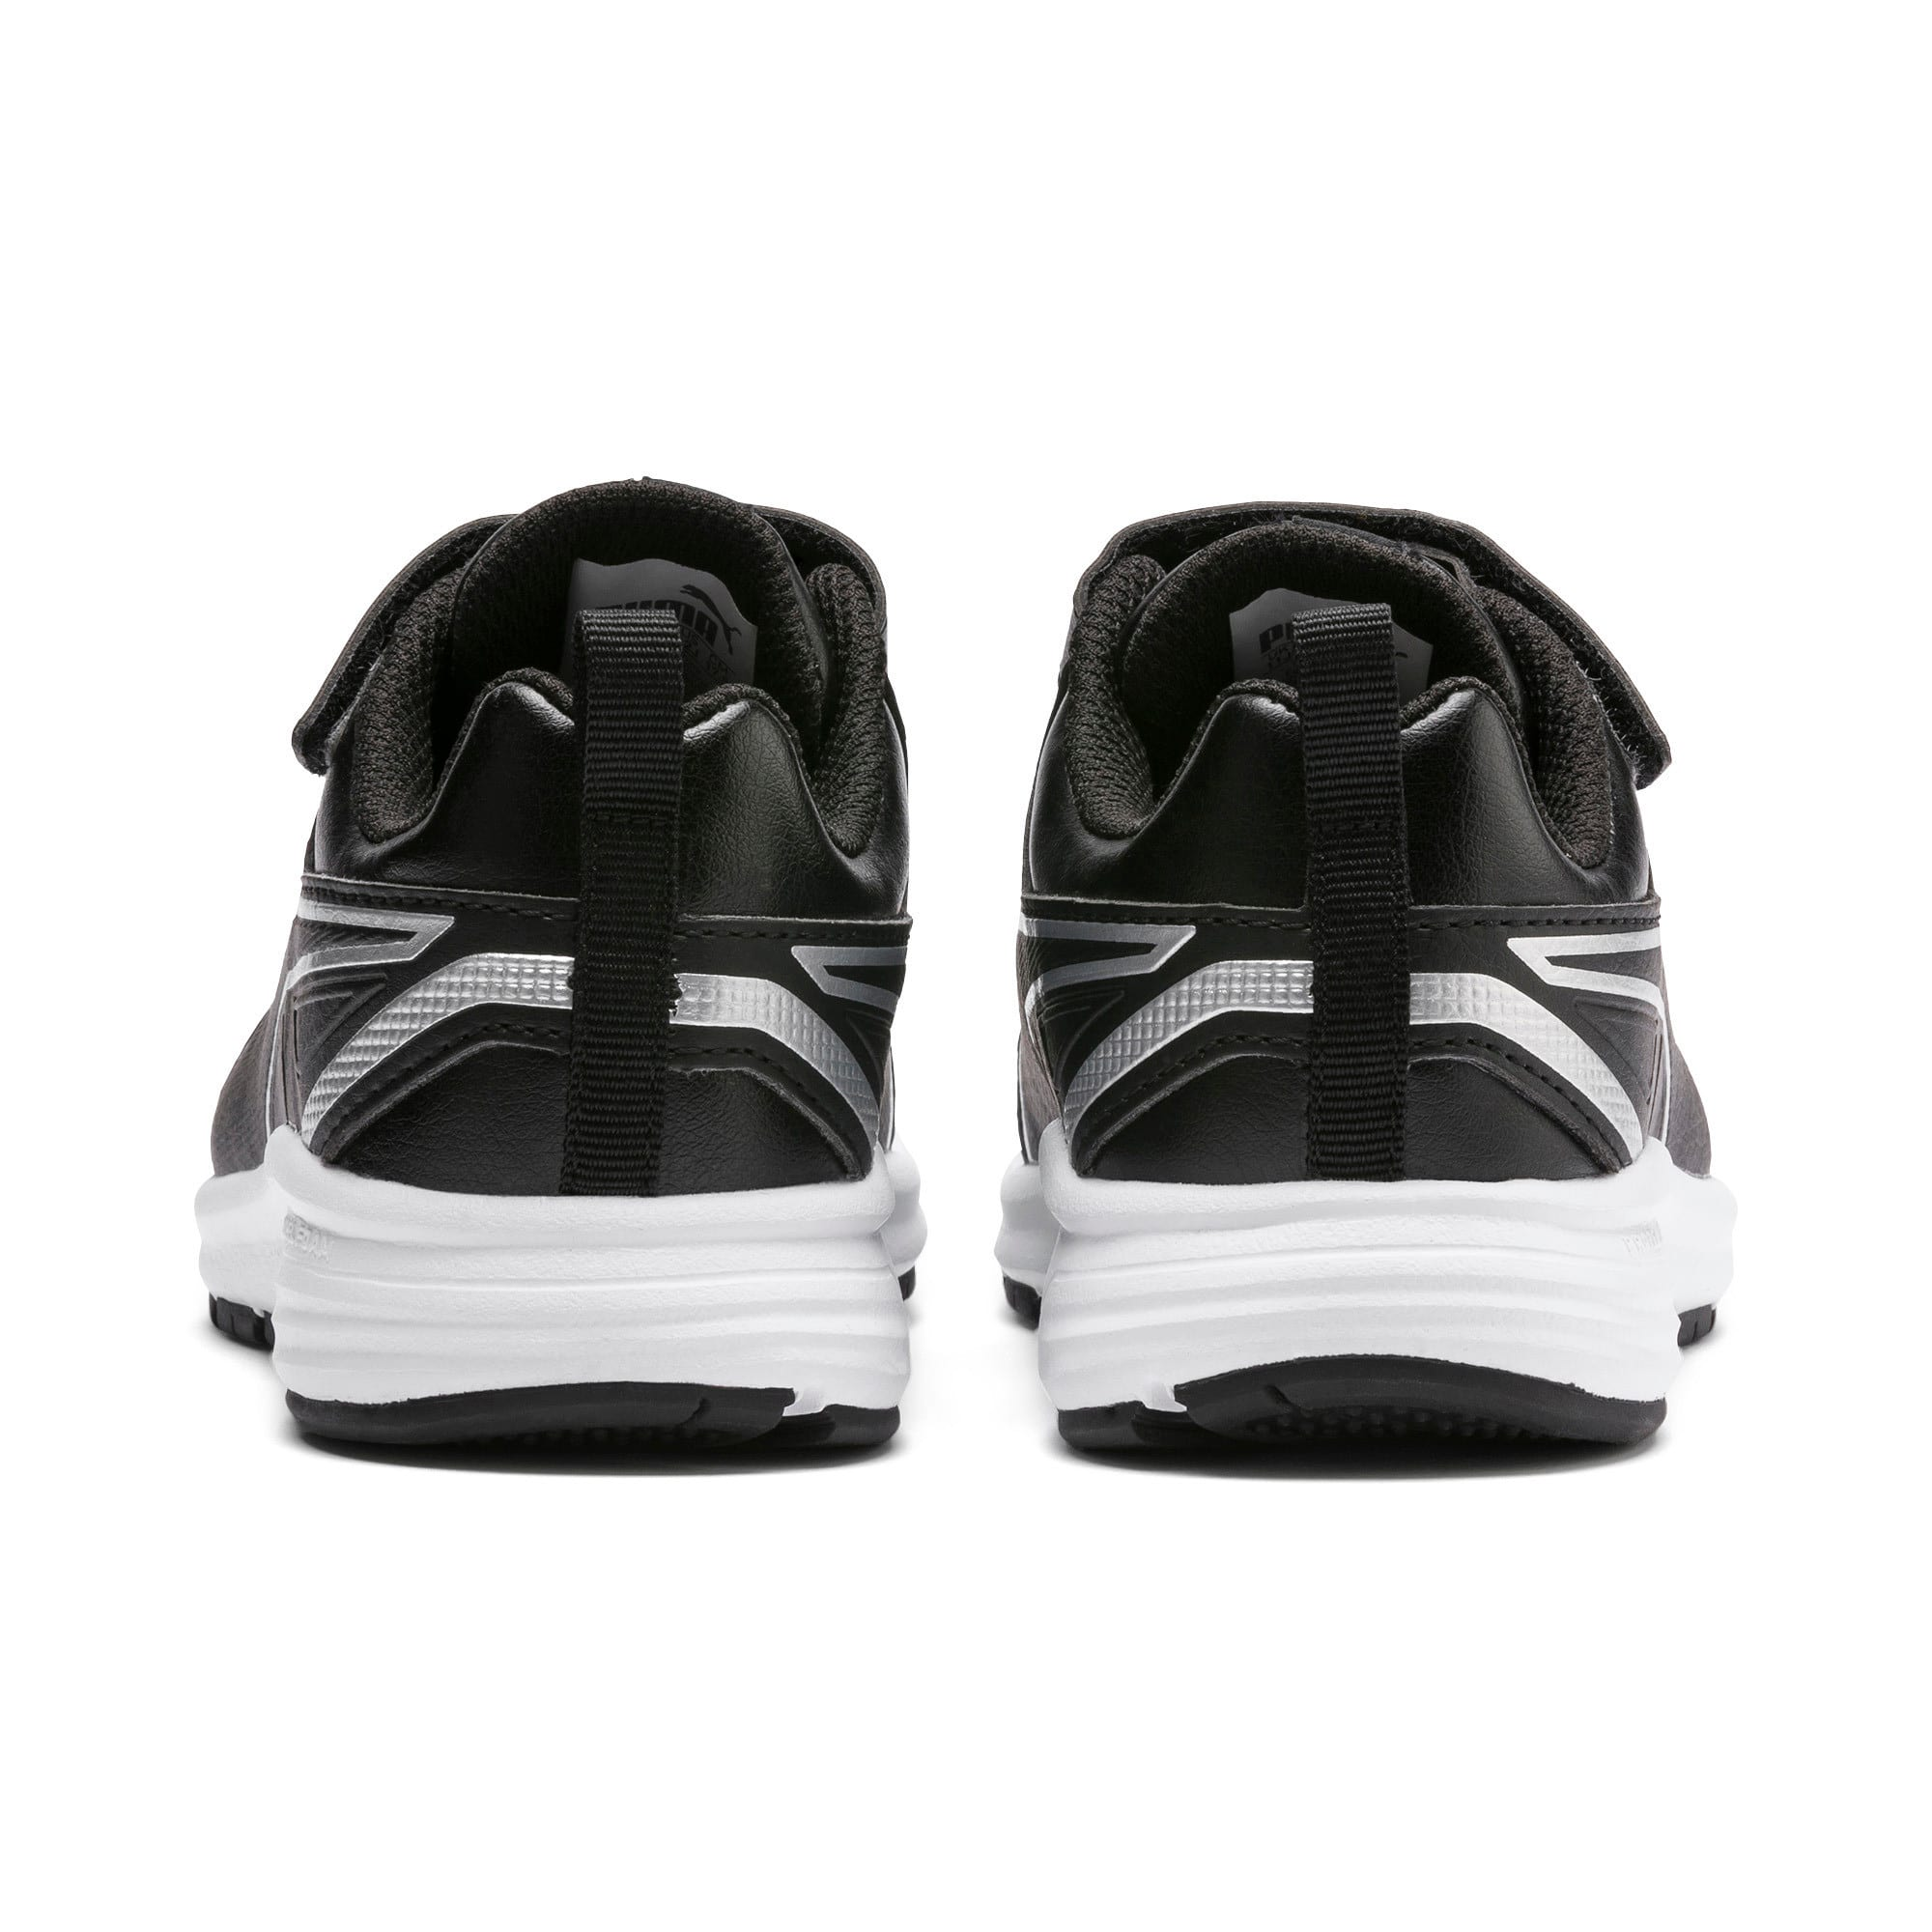 Thumbnail 3 of Pure Jogger SL Kids' Trainers, Puma Black-Puma Silver-White, medium-IND